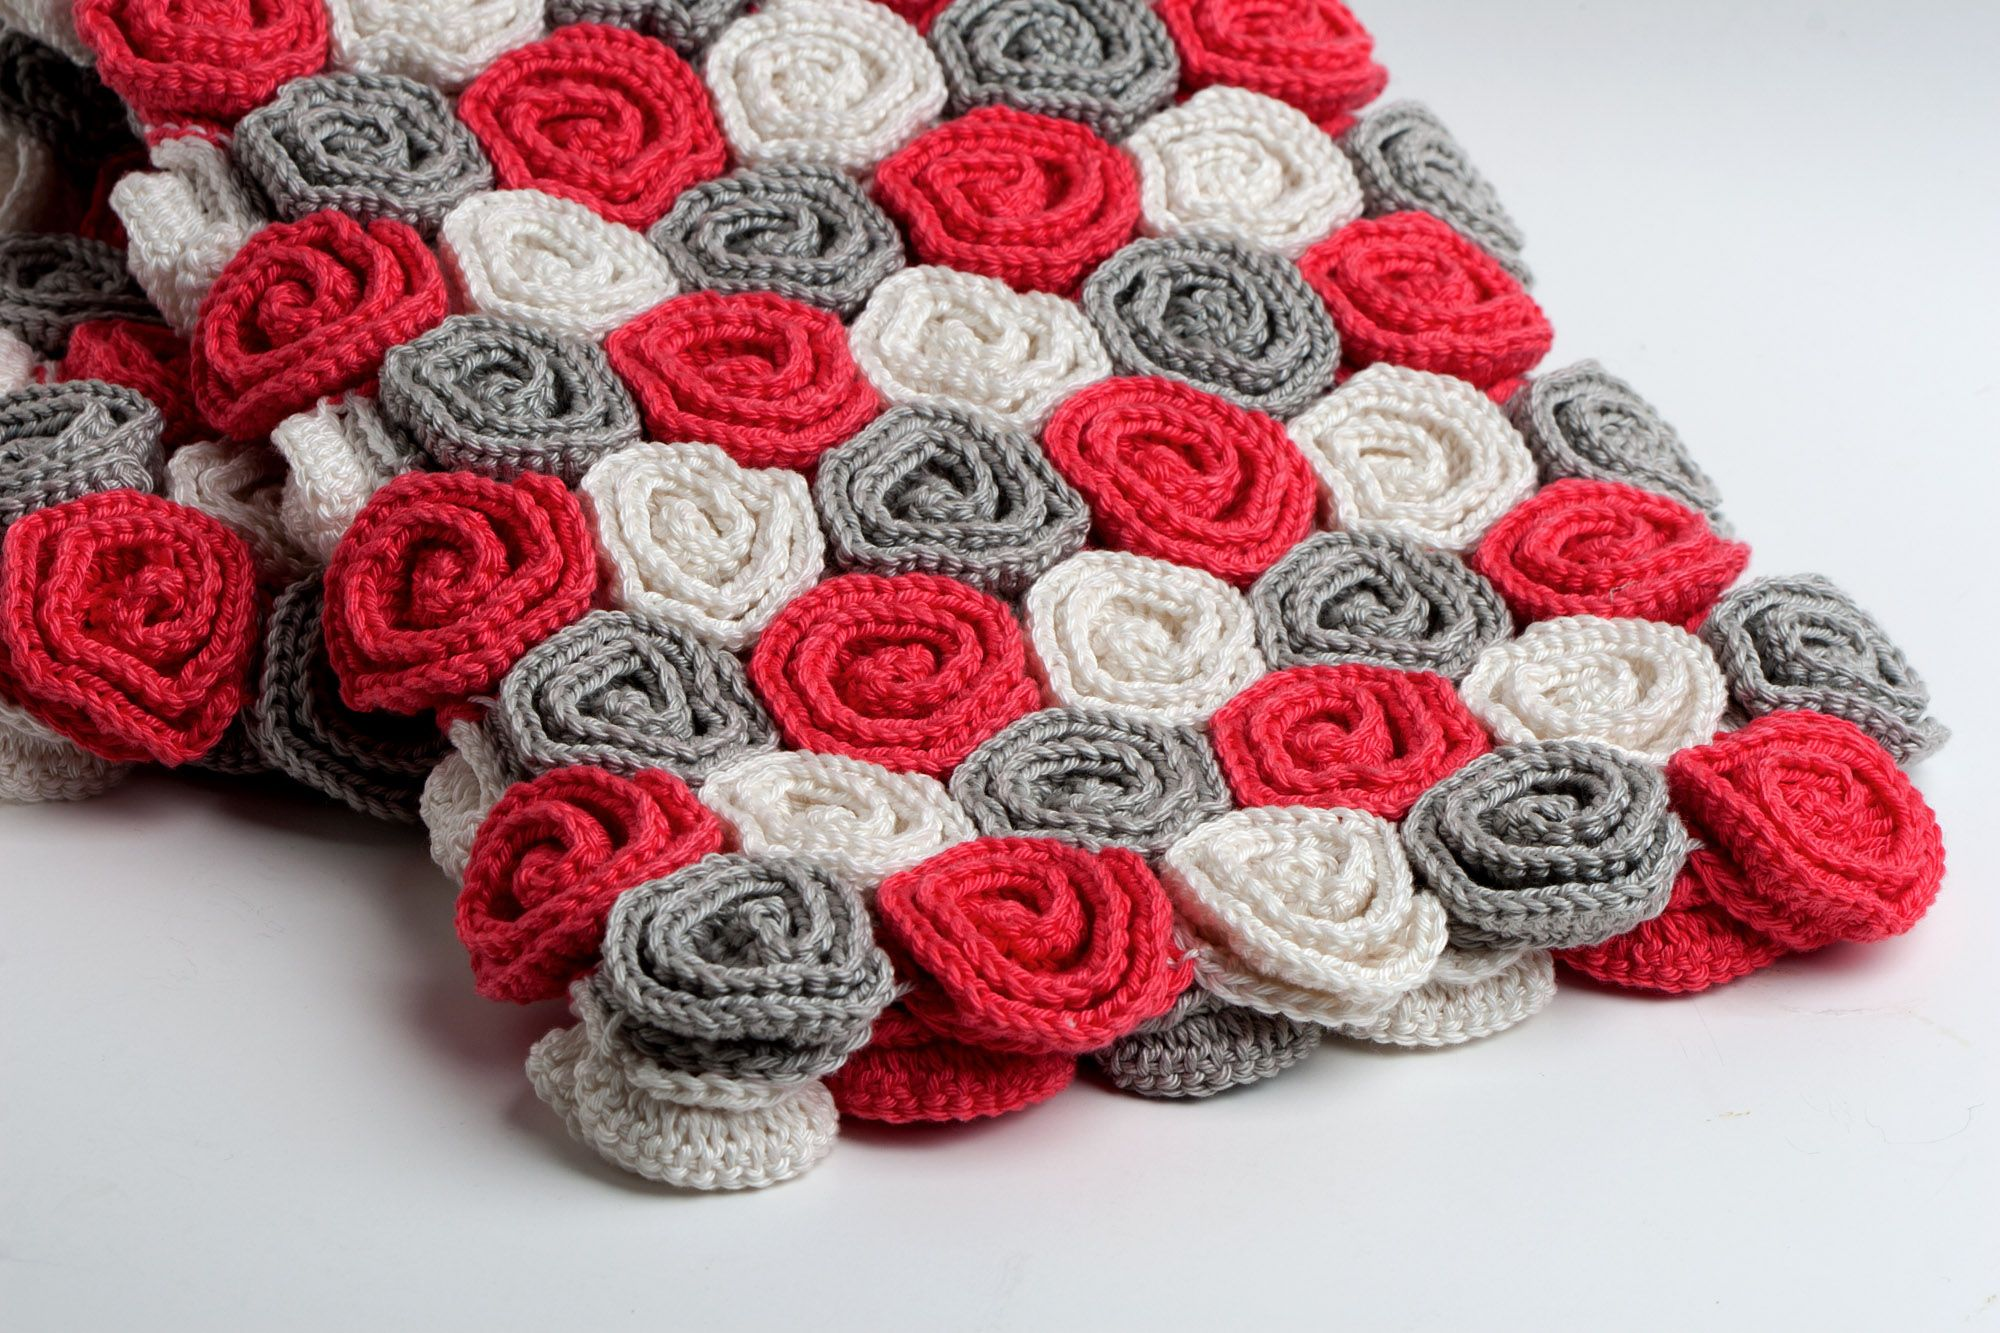 Crochet Rose Field Blanket Pattern | Crochet blanket patterns ...